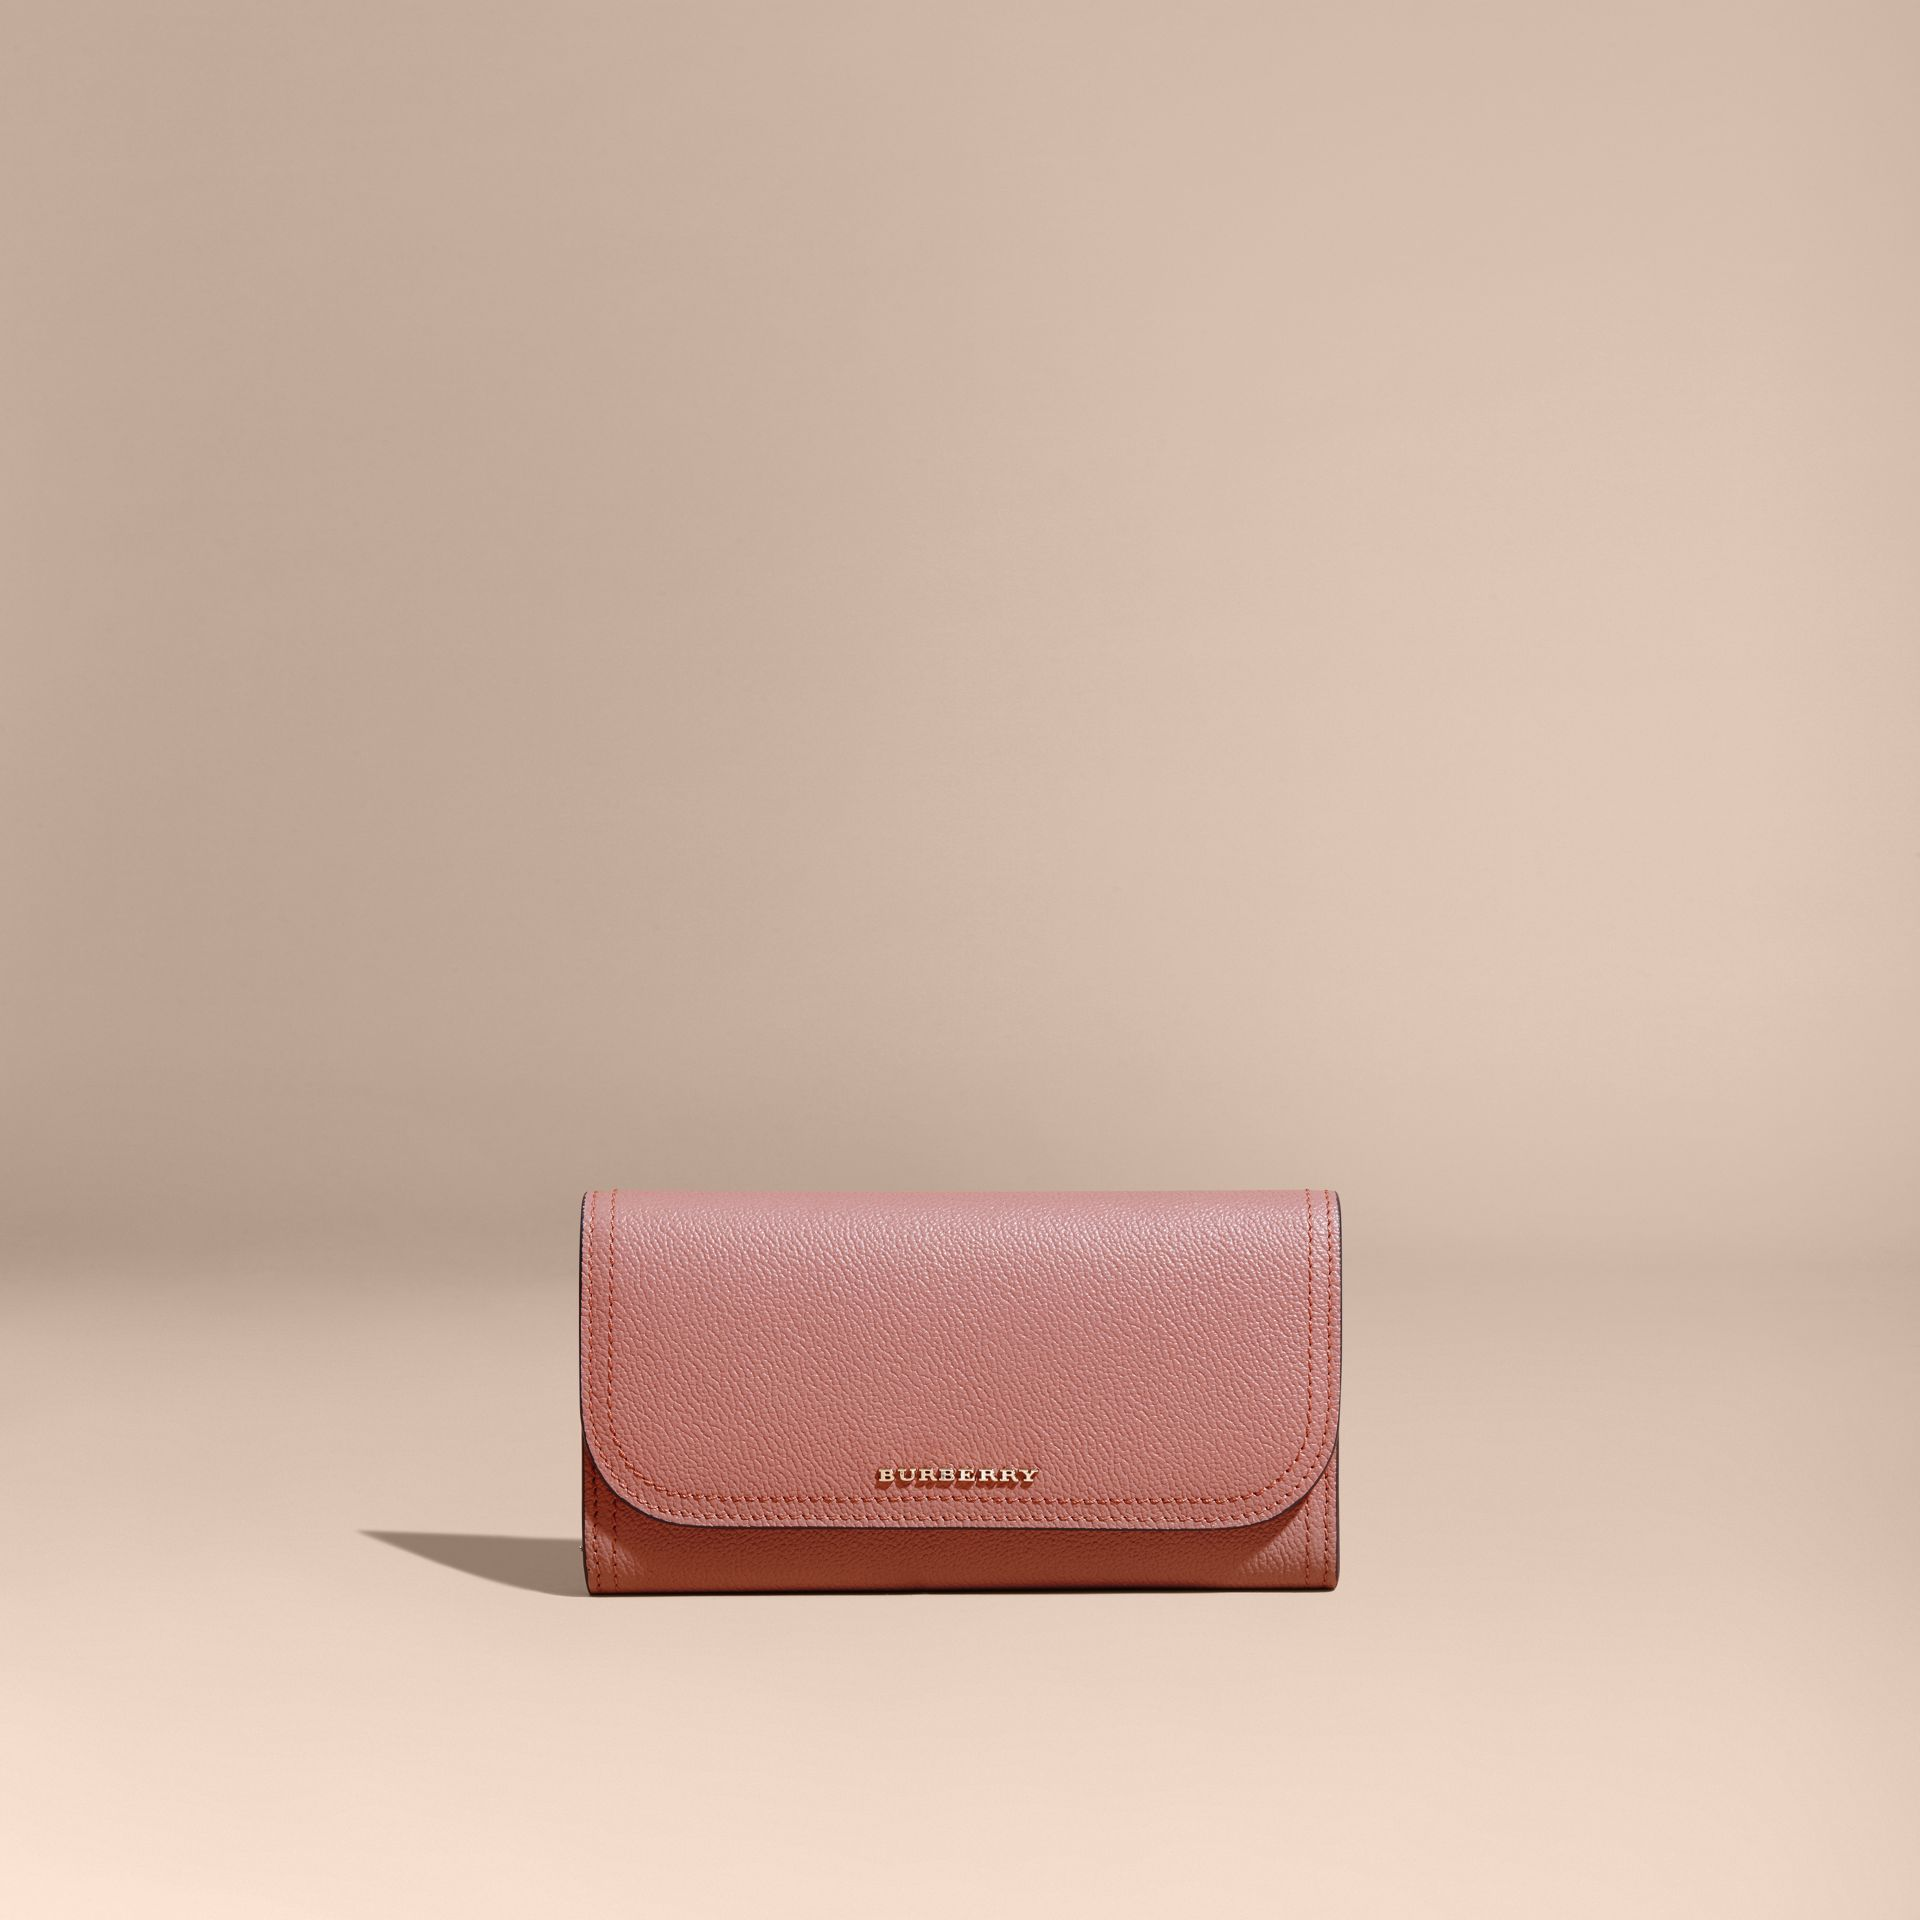 Grainy Leather Slim Continental Wallet in Dusty Pink - Women | Burberry Singapore - gallery image 7